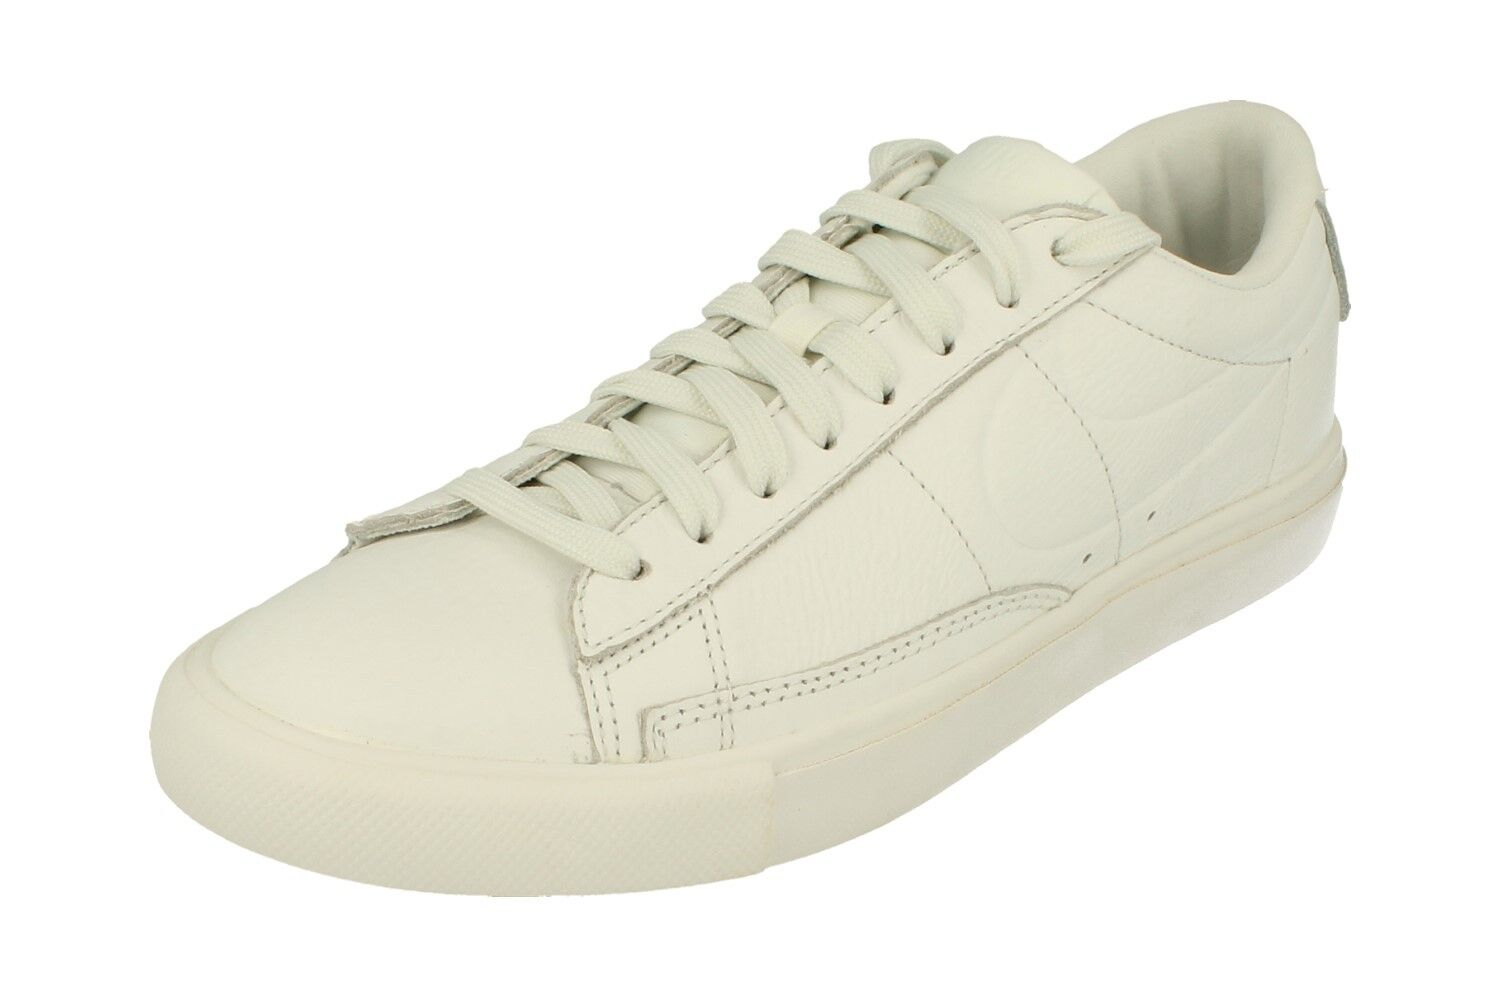 Nike Blazer Low Mens Trainers 371760 Sneakers Shoes 109